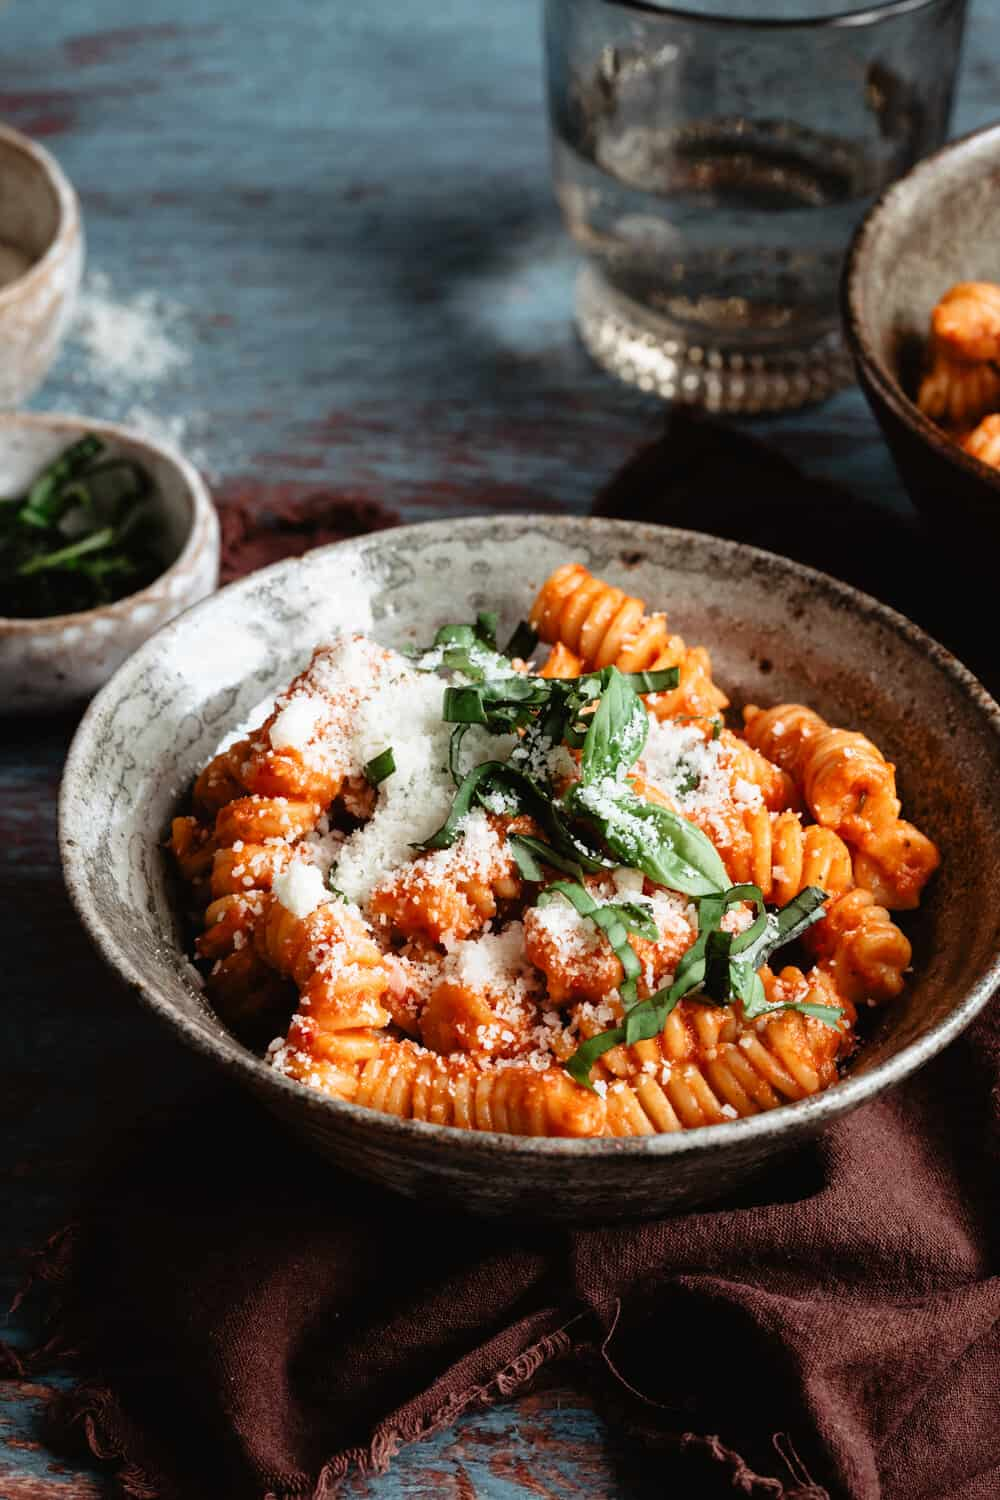 CREAMY RED PEPPER PASTA - INGREDIENTS1 package gluten free pasta of choice1 15-ish oz jar of roasted red peppers1/2 cup cashews OR 1/2 cup full fat coconut milk1/4 cup tomato paste1 onion, roughly chopped3 cloves garlic, mashed or minced2 tb italian seasoning1 tsp sea salt1 tsp crushed black pepper2 tb olive oiloptional: chopped fresh basil, parmesan cheese